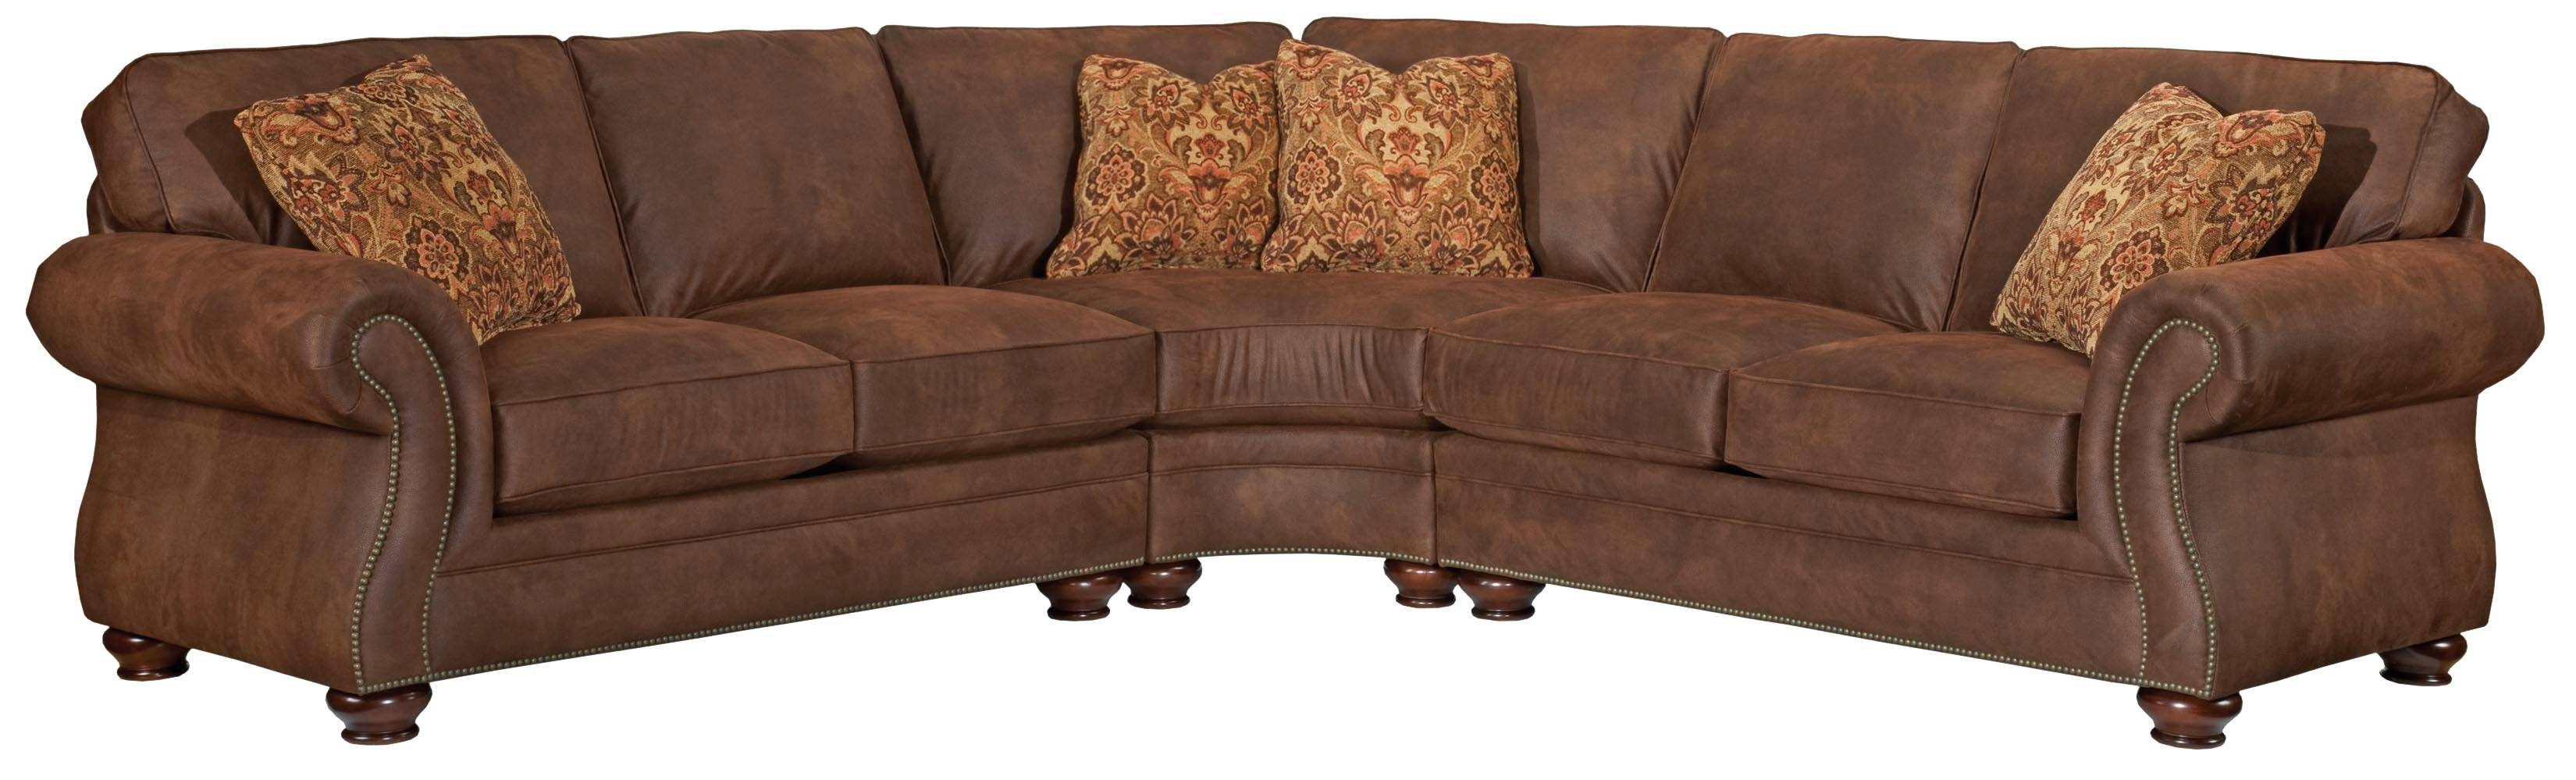 Broyhill Furniture Laramie 3 Piece Wedge Sectional Sofa - Ahfa throughout Broyhill Sectional Sleeper Sofas (Image 6 of 15)